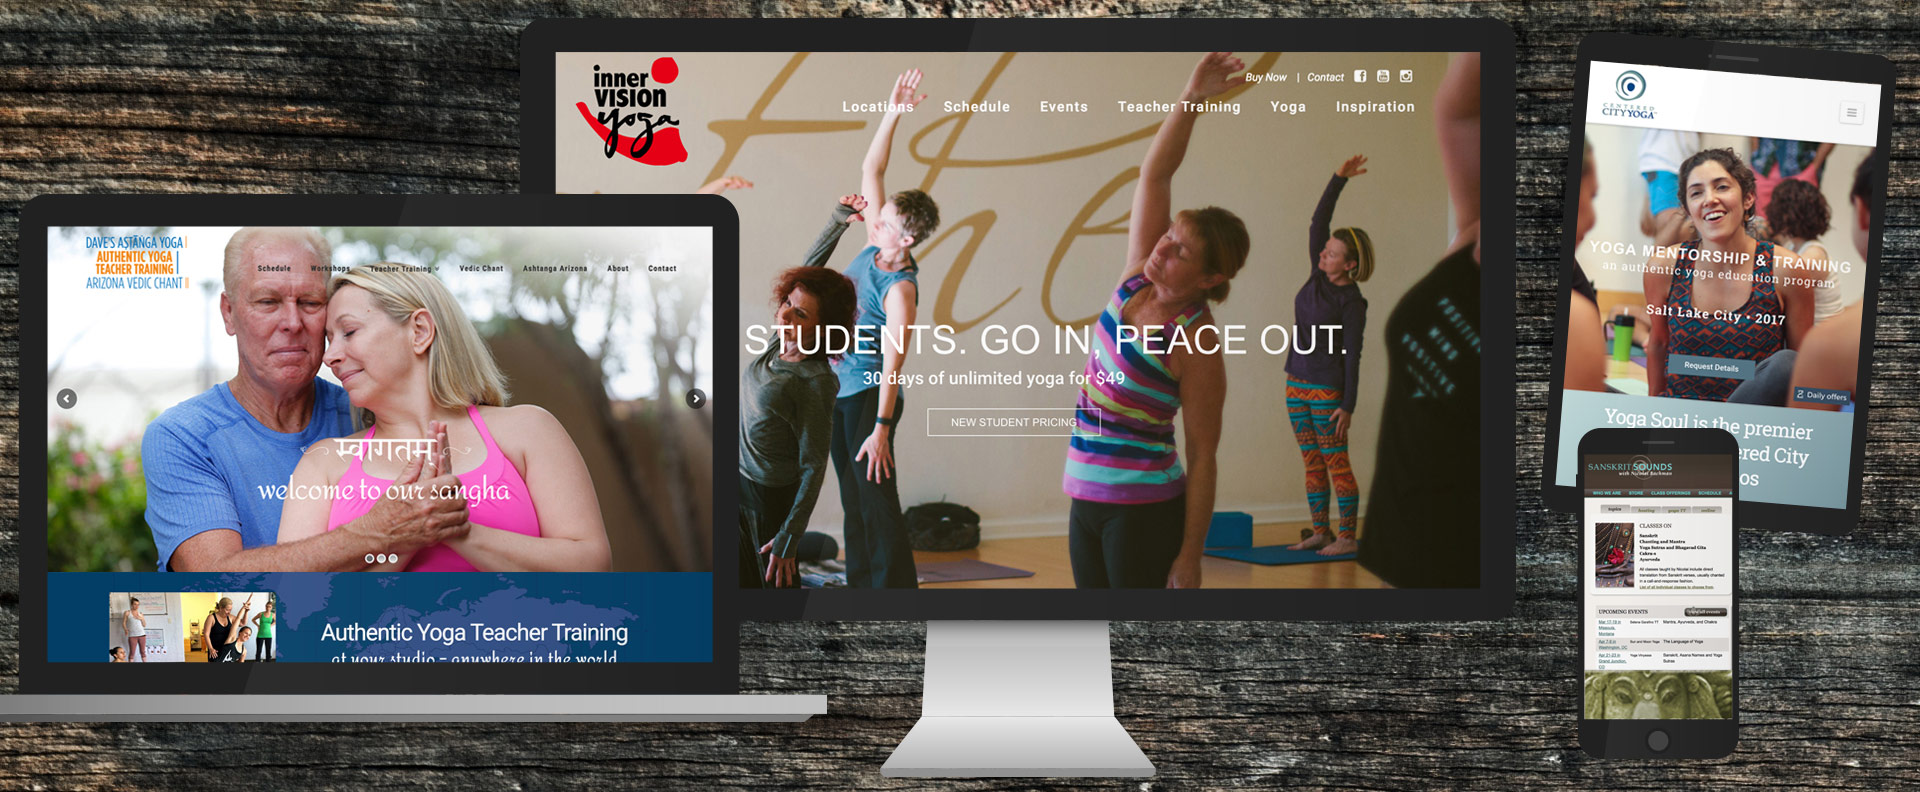 Website Design for Yoga Teachers and Yoga Studios